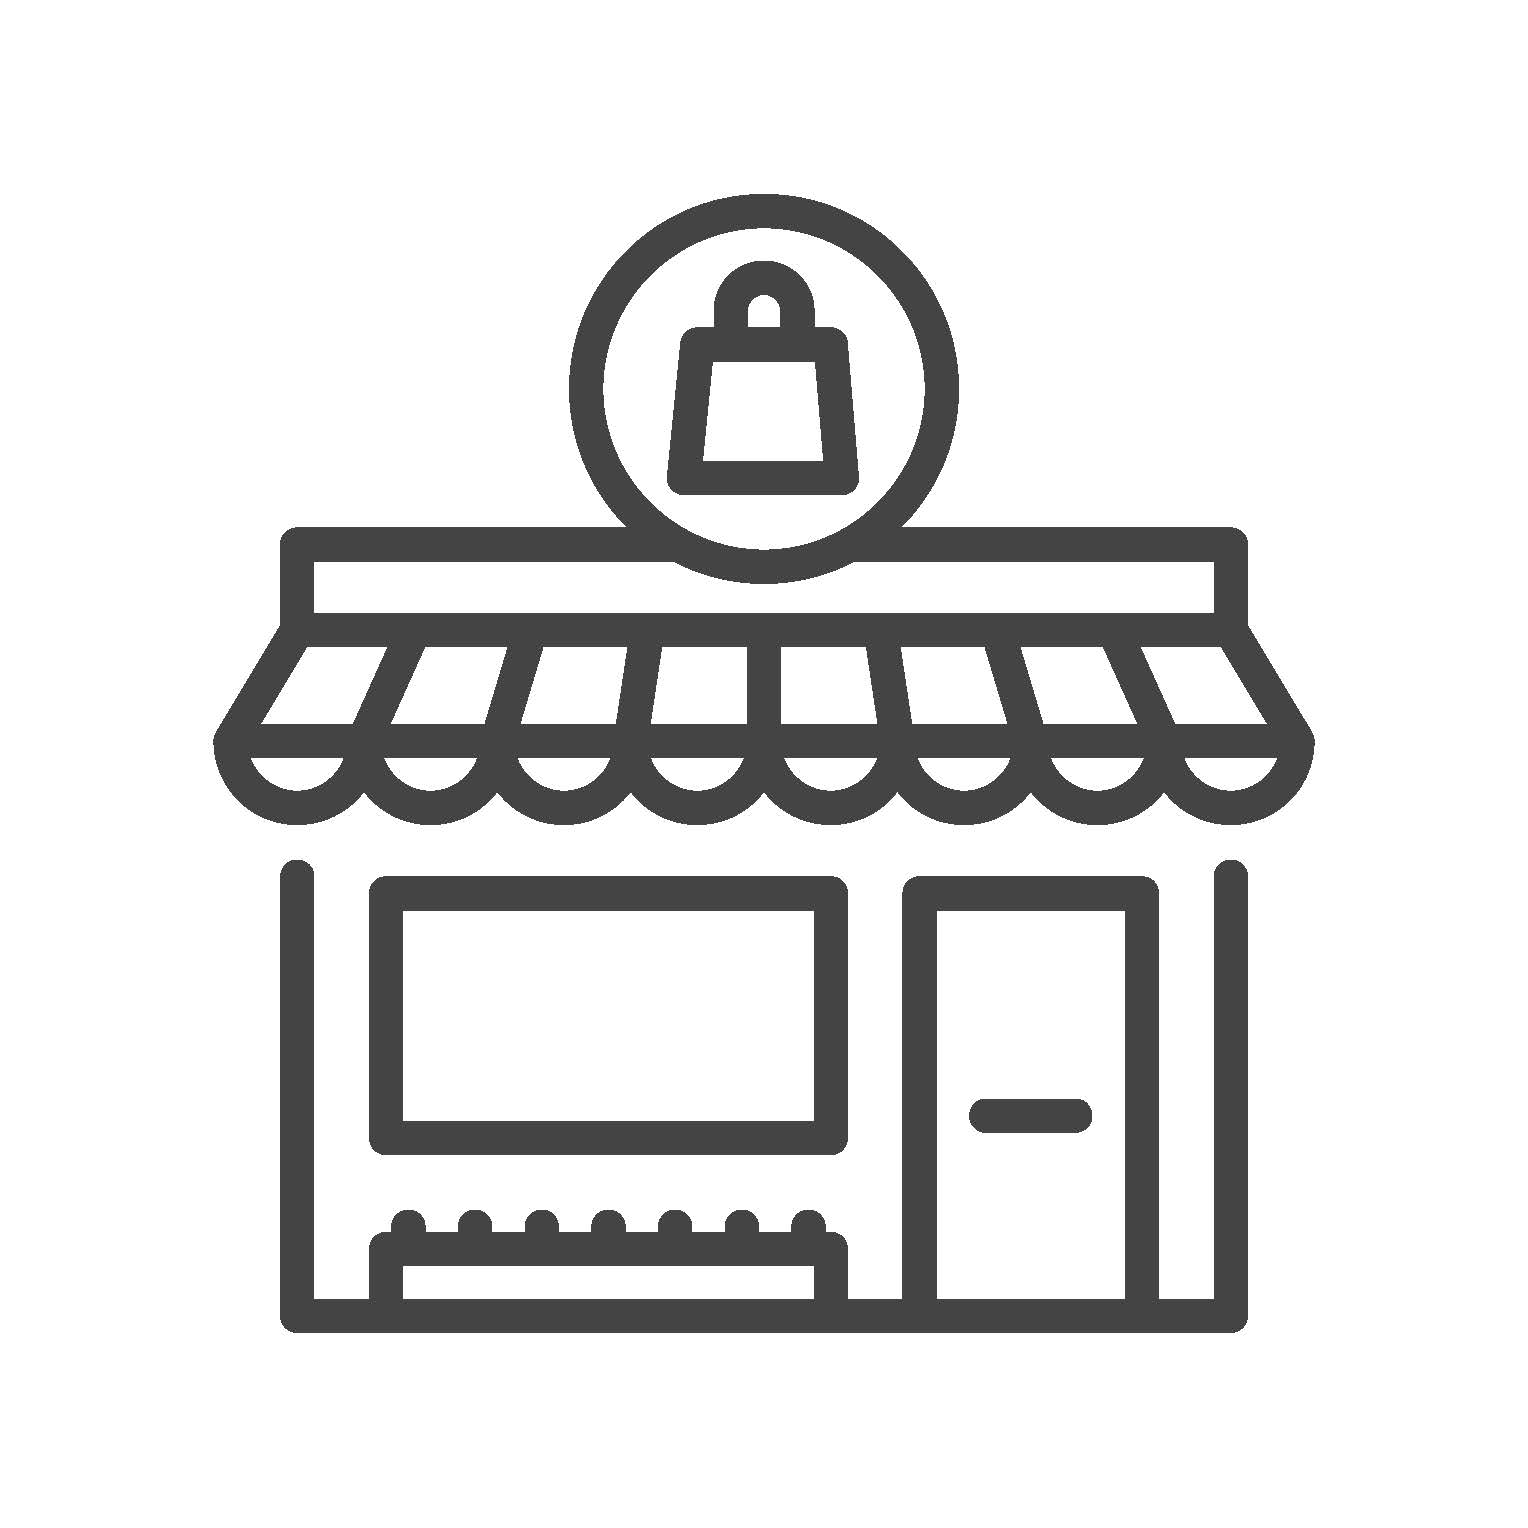 Shop icon design by Freepik from Flaticon